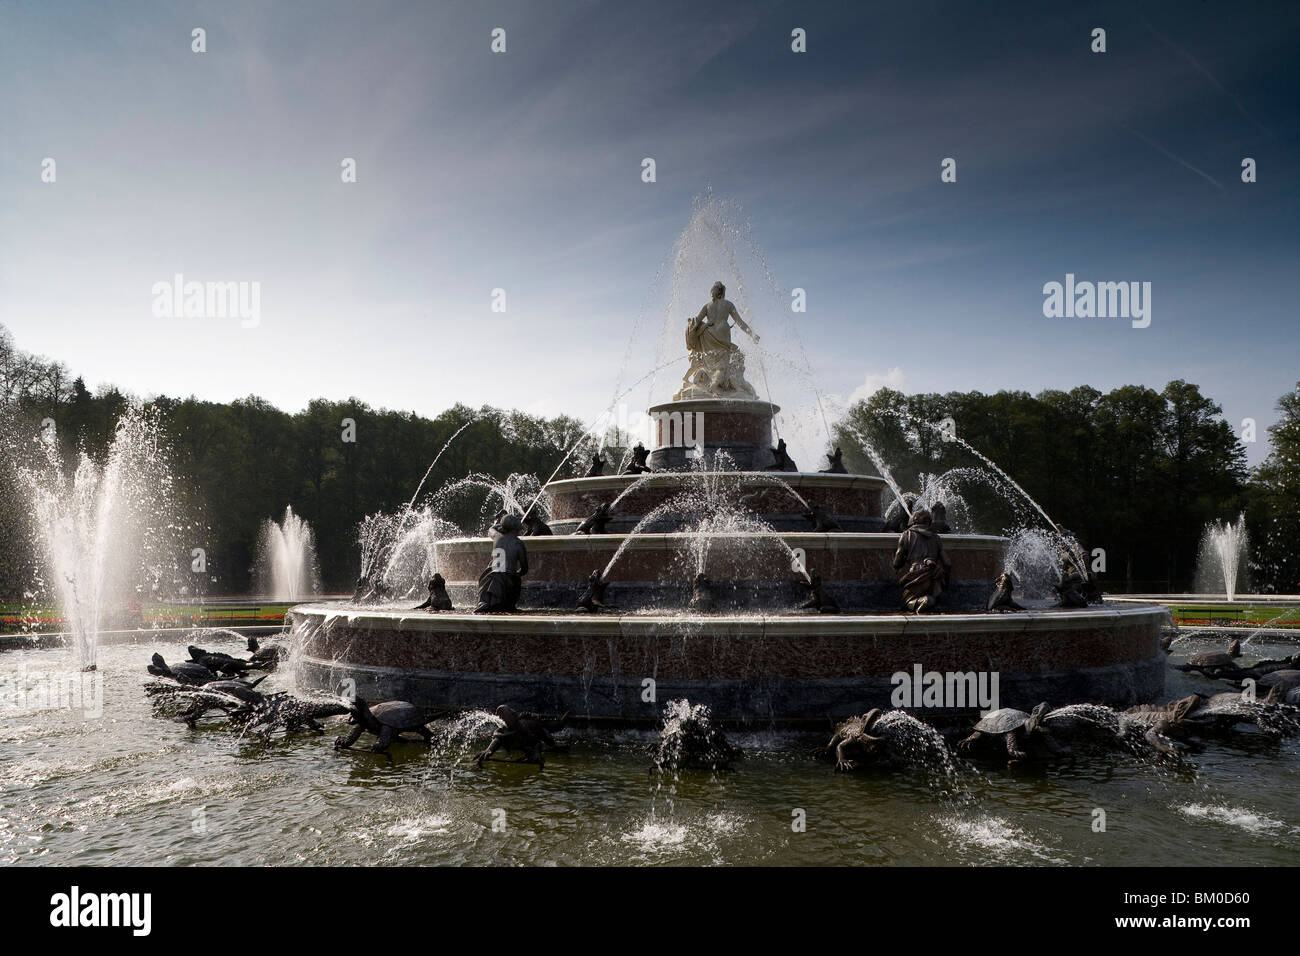 Fountain in front of Herrenchiemsee Castle, Herrenchiemsee, Chiemsee, Chiemgau, Bavaria, Germany, Europe - Stock Image